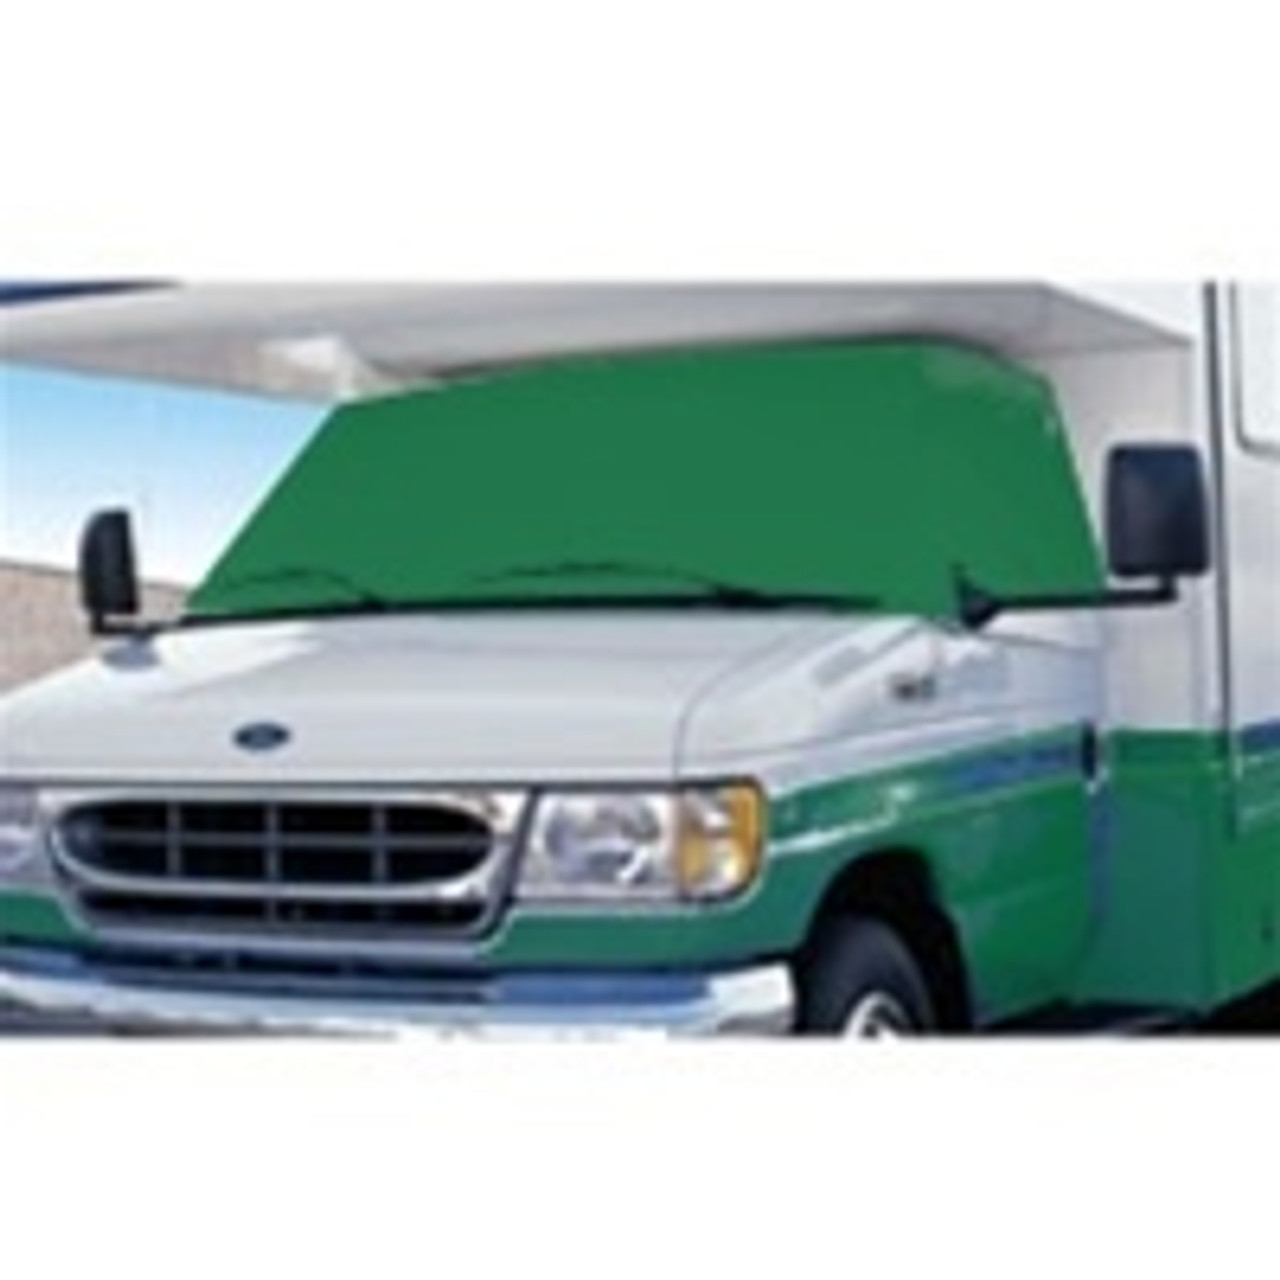 Renewed ADCO 2523 Clear RV Windshield Cover